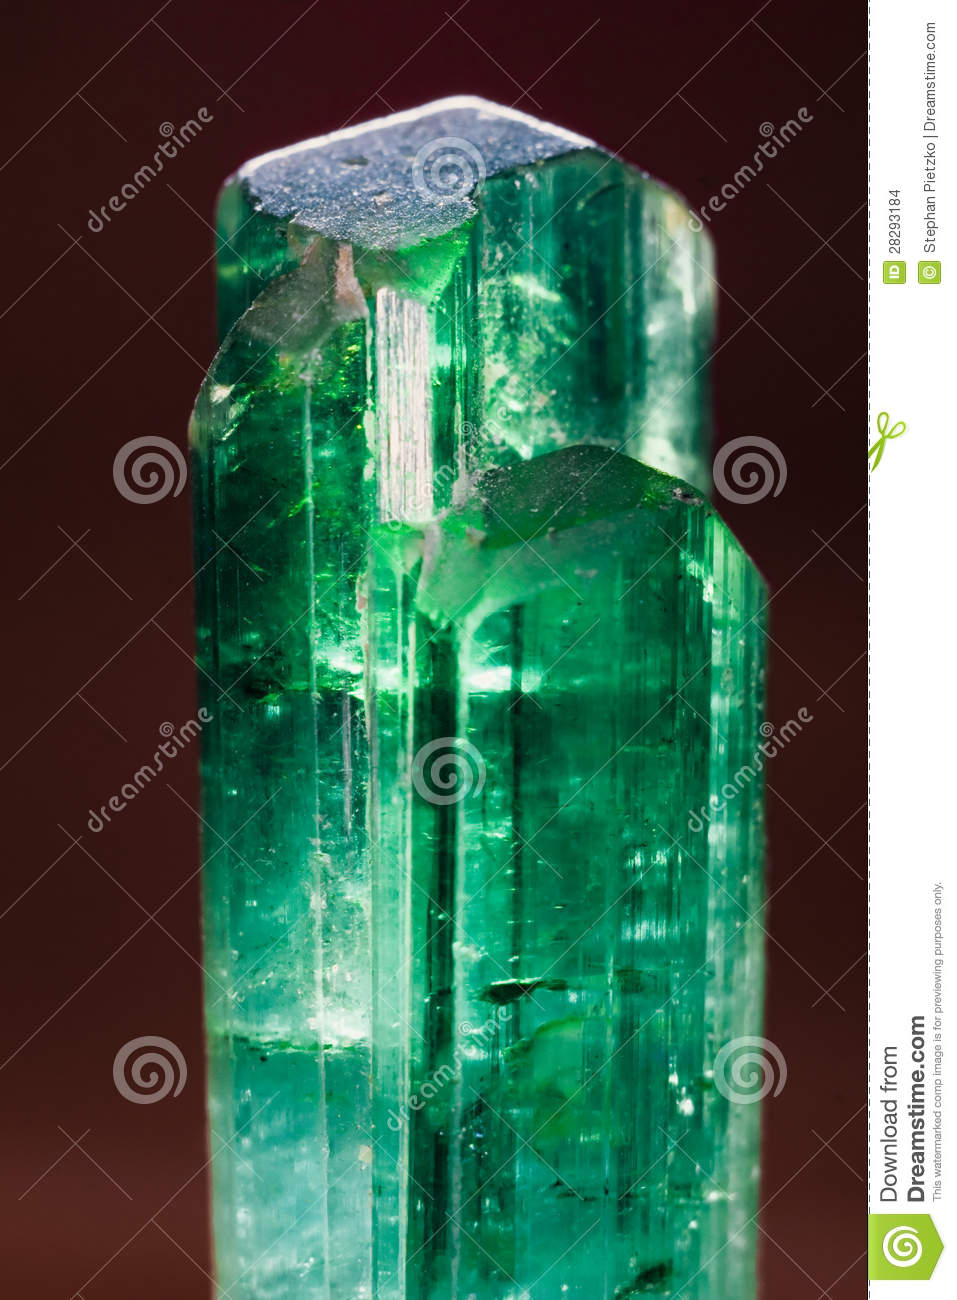 Rare Uncut Green Turmaline Gemstone From Pakistan Stock